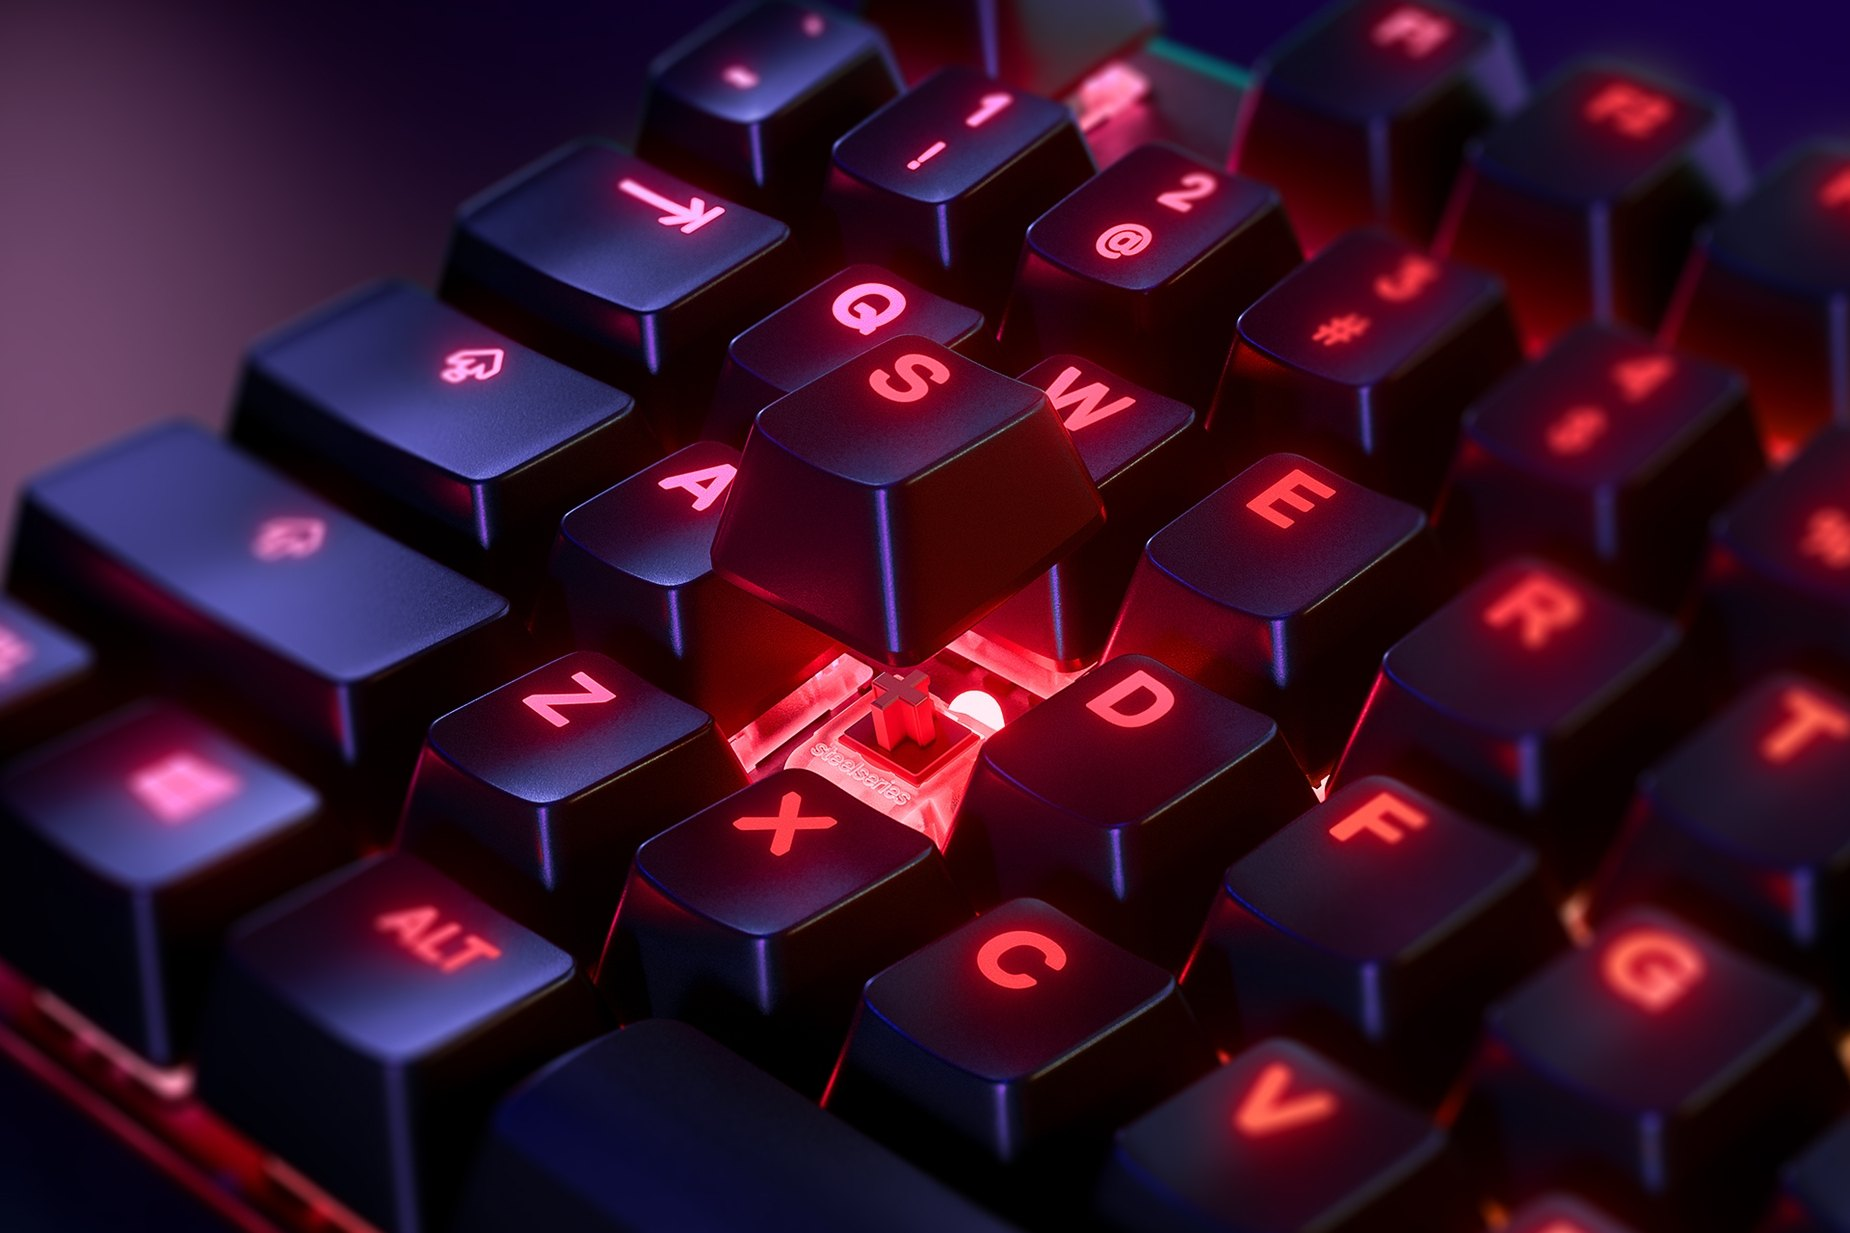 Zoomed in view of a single key on the UK English - Apex 7 TKL (Kırmızı Anahtar) gaming keyboard, the key is raised up to show the SteelSeries QX2 Mechanical RGB Switch underneath